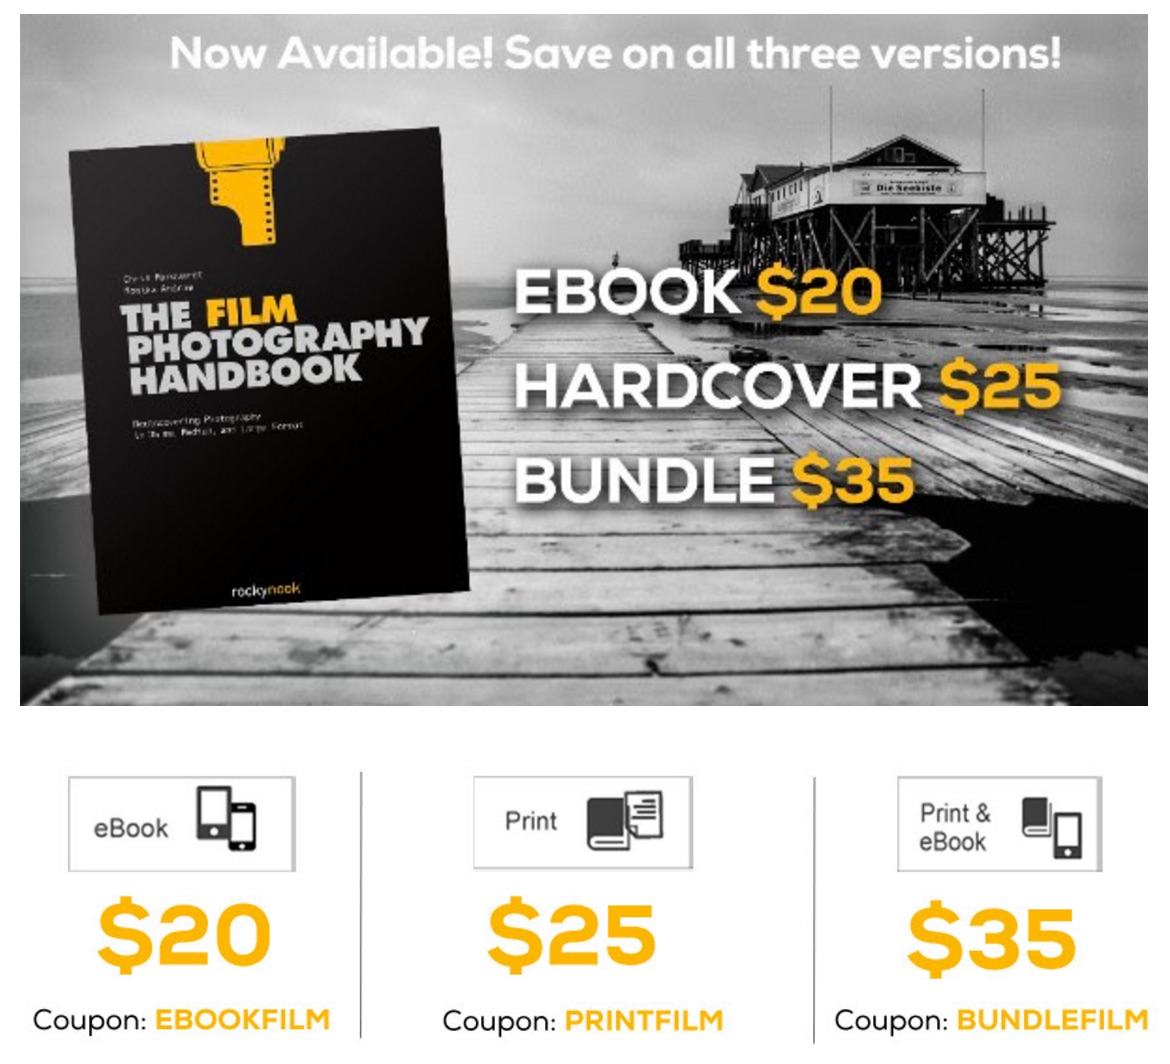 Hardcover: The Film Photography Handbook – Coupon Codes